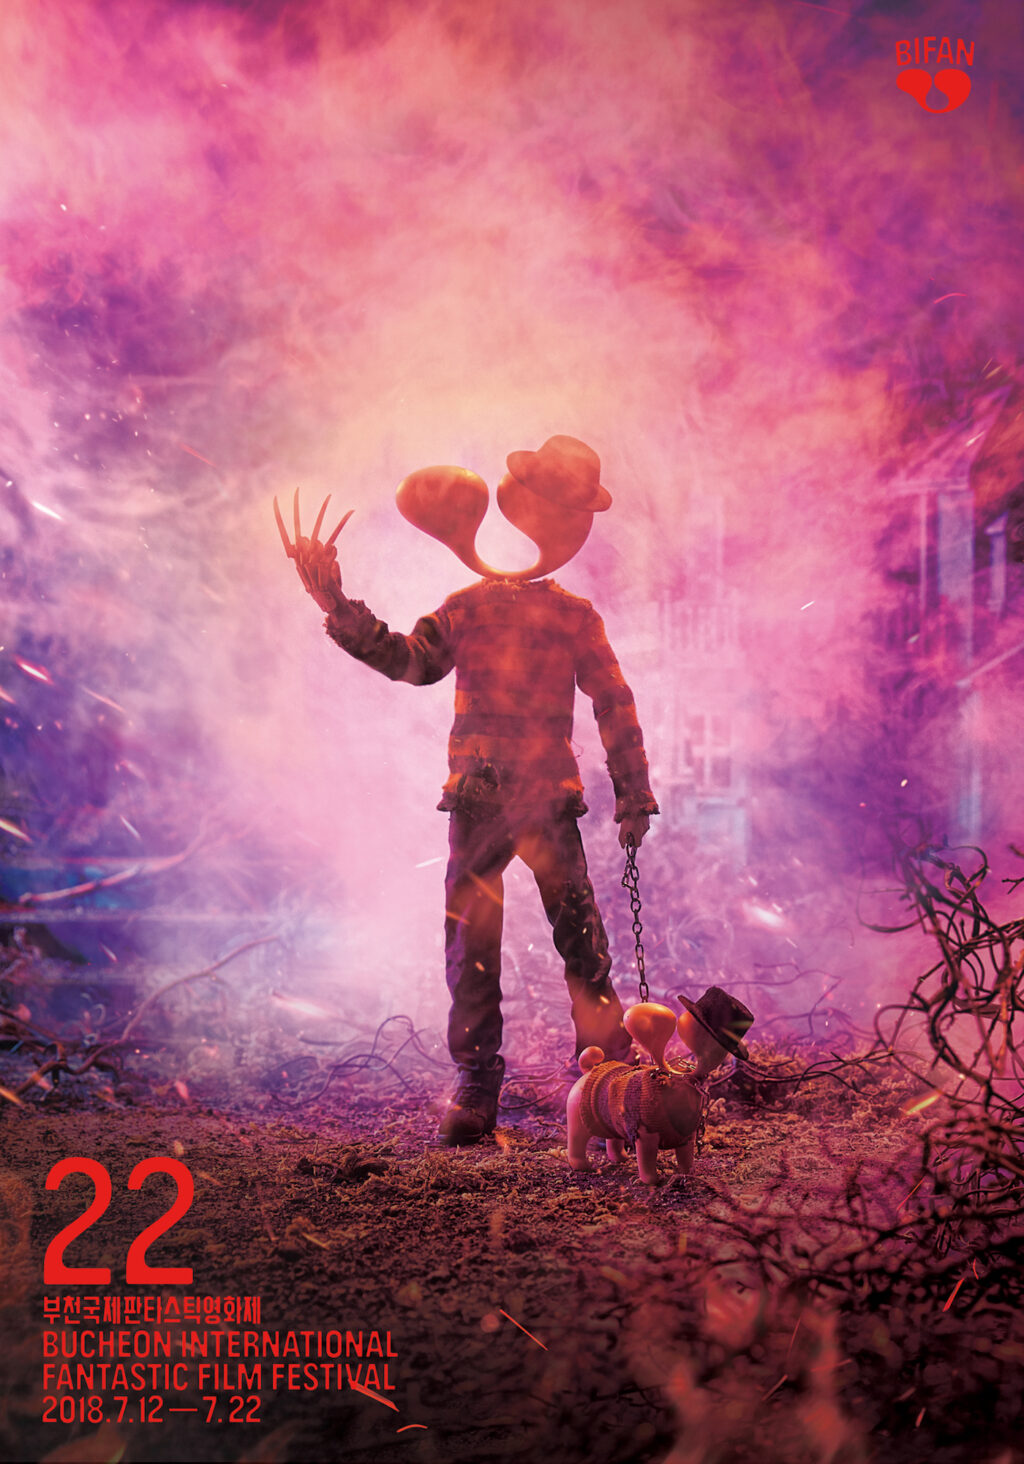 22nd BIFAN Official Poster 3 1024x1464 - BIFAN 2018: Official Posters See Freddy Krueger as a Dog Owner and It's Adorable